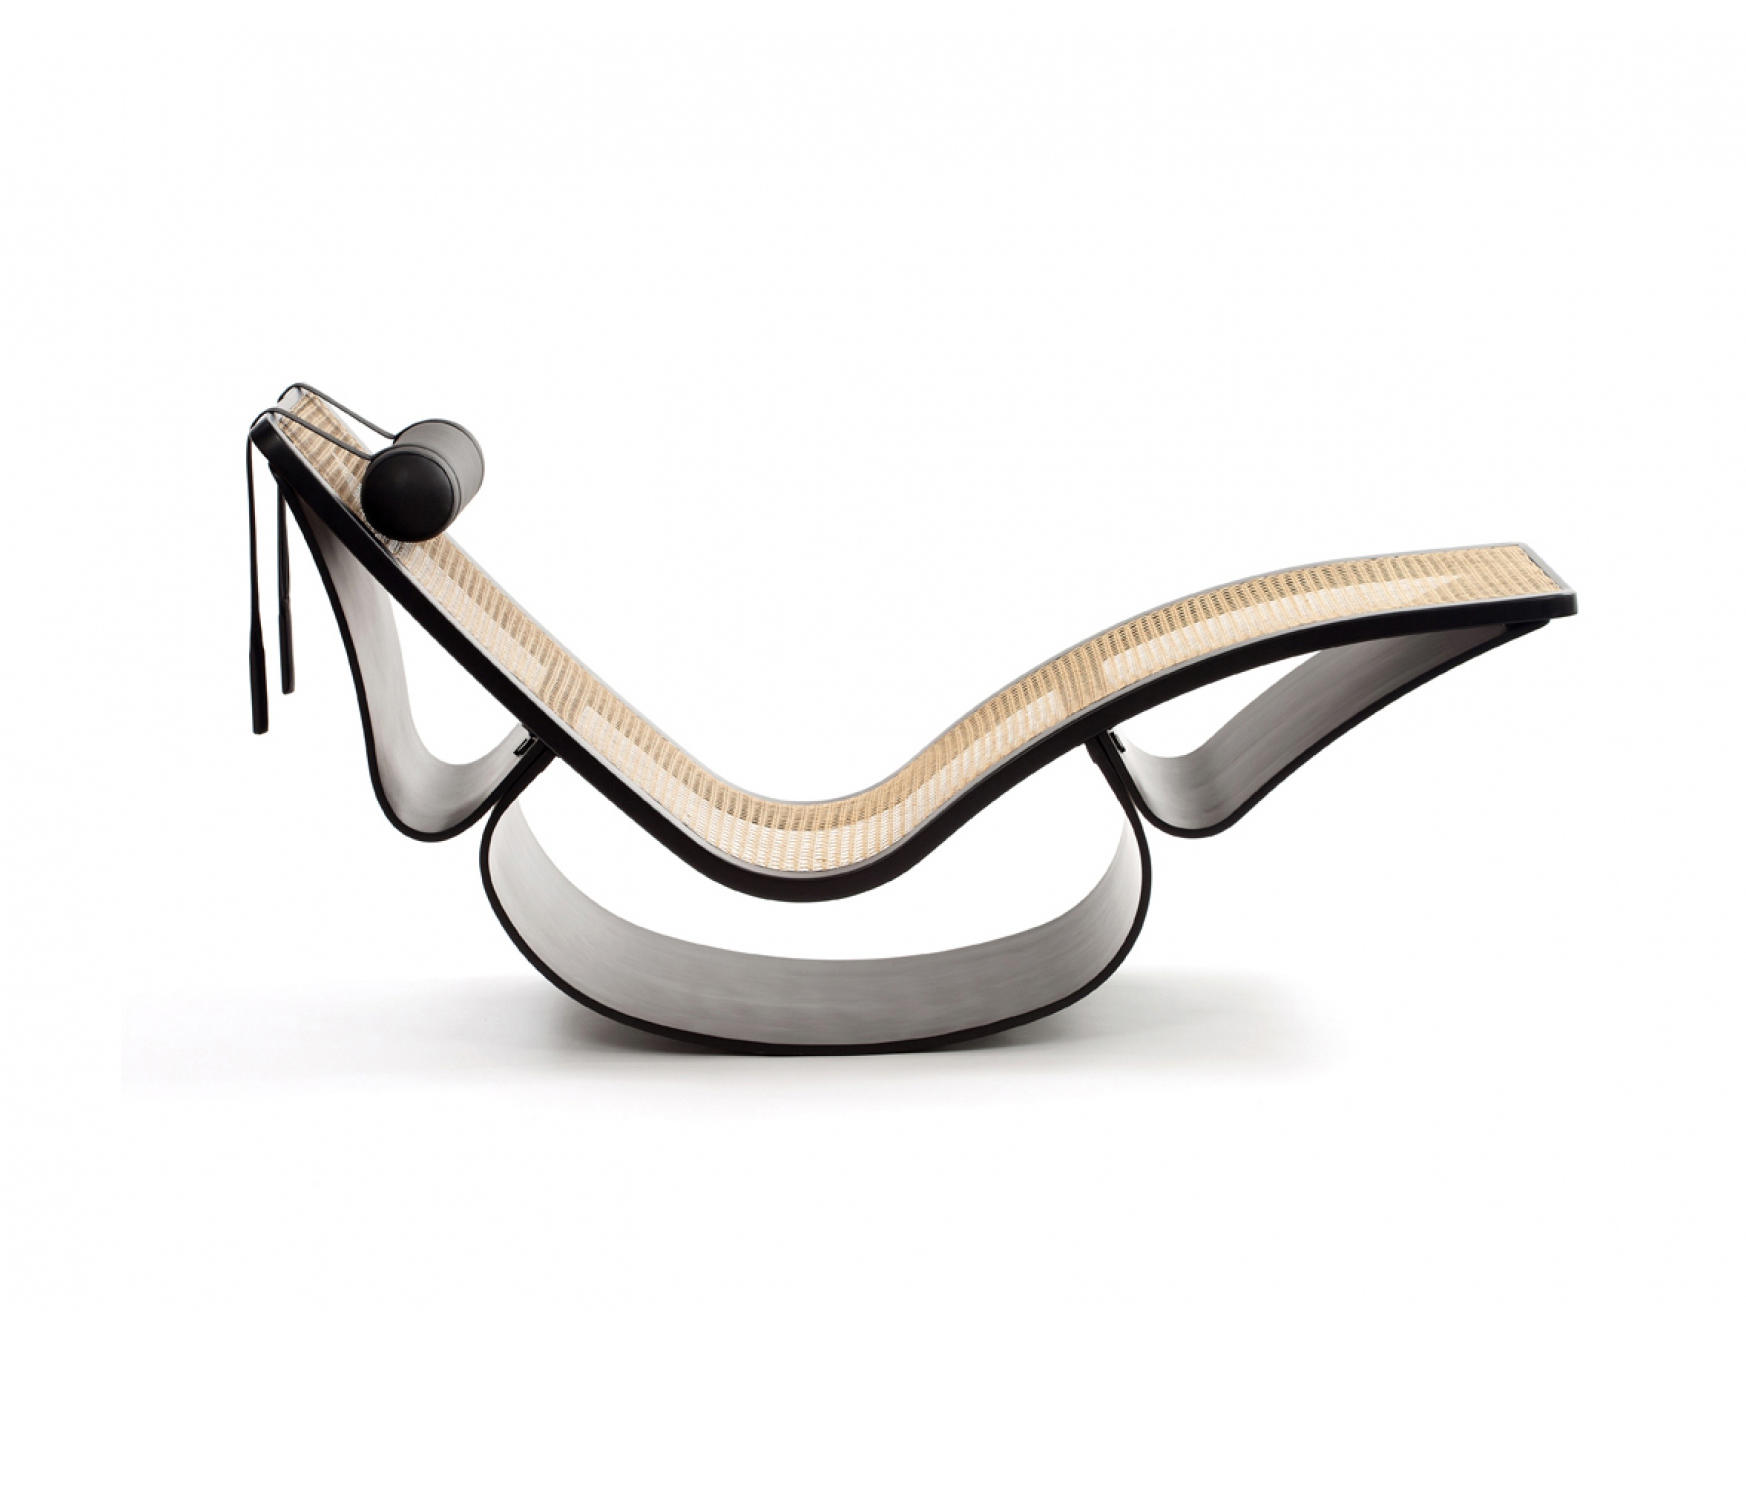 Chaise Rocking Chair Rio Rocking Chaise Armchairs From Espasso Architonic